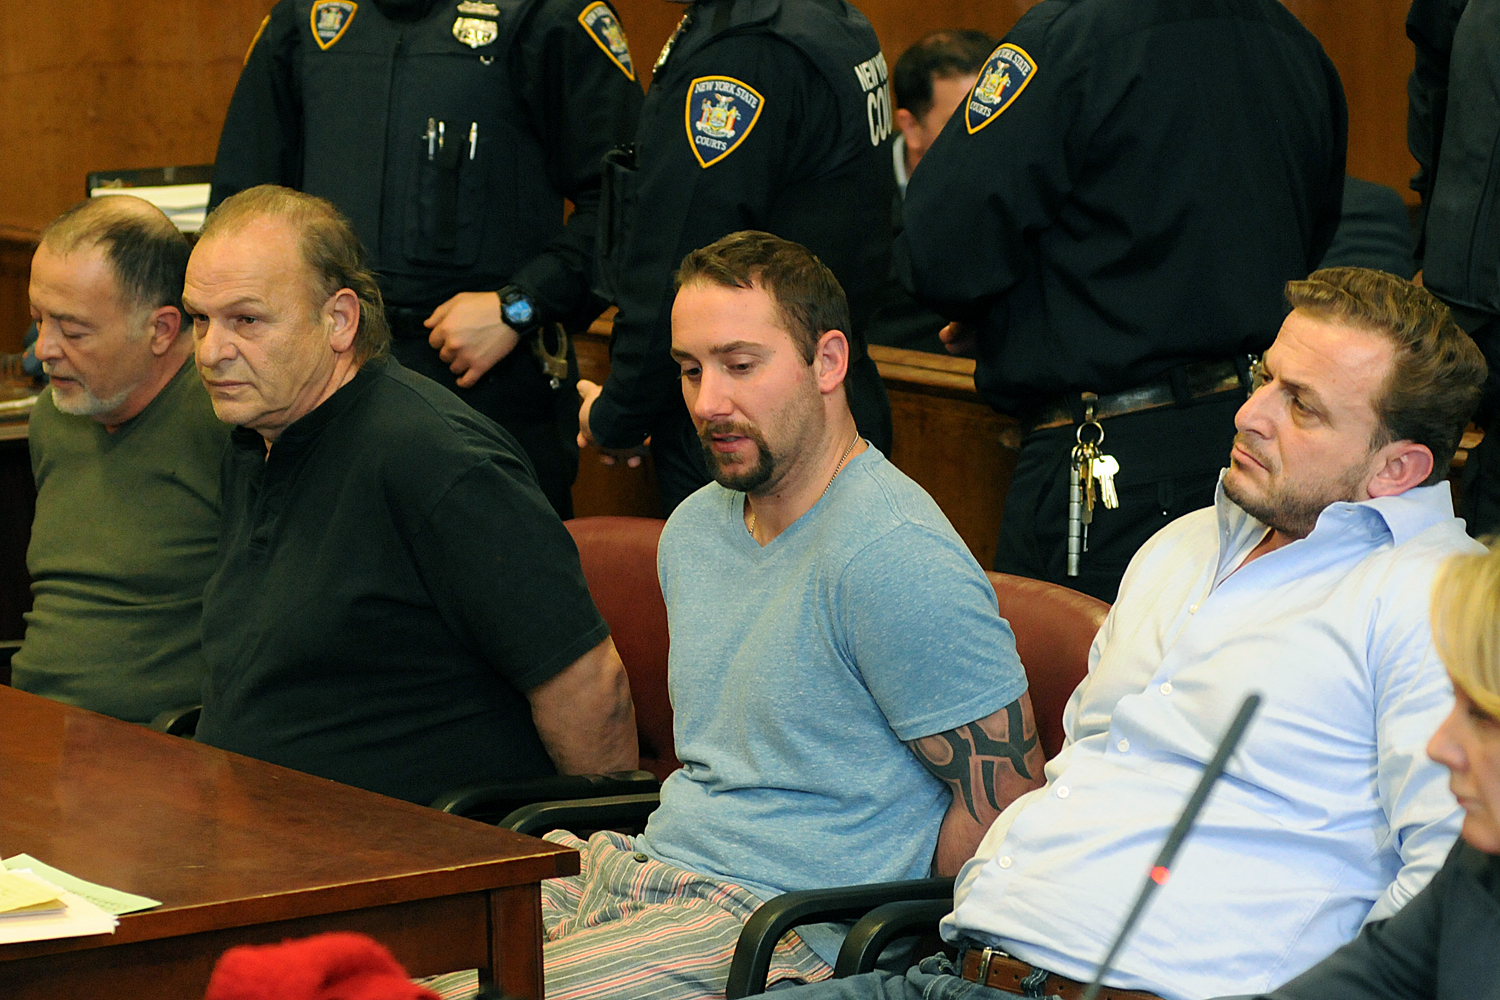 arraignments in connection with East Village Explosion